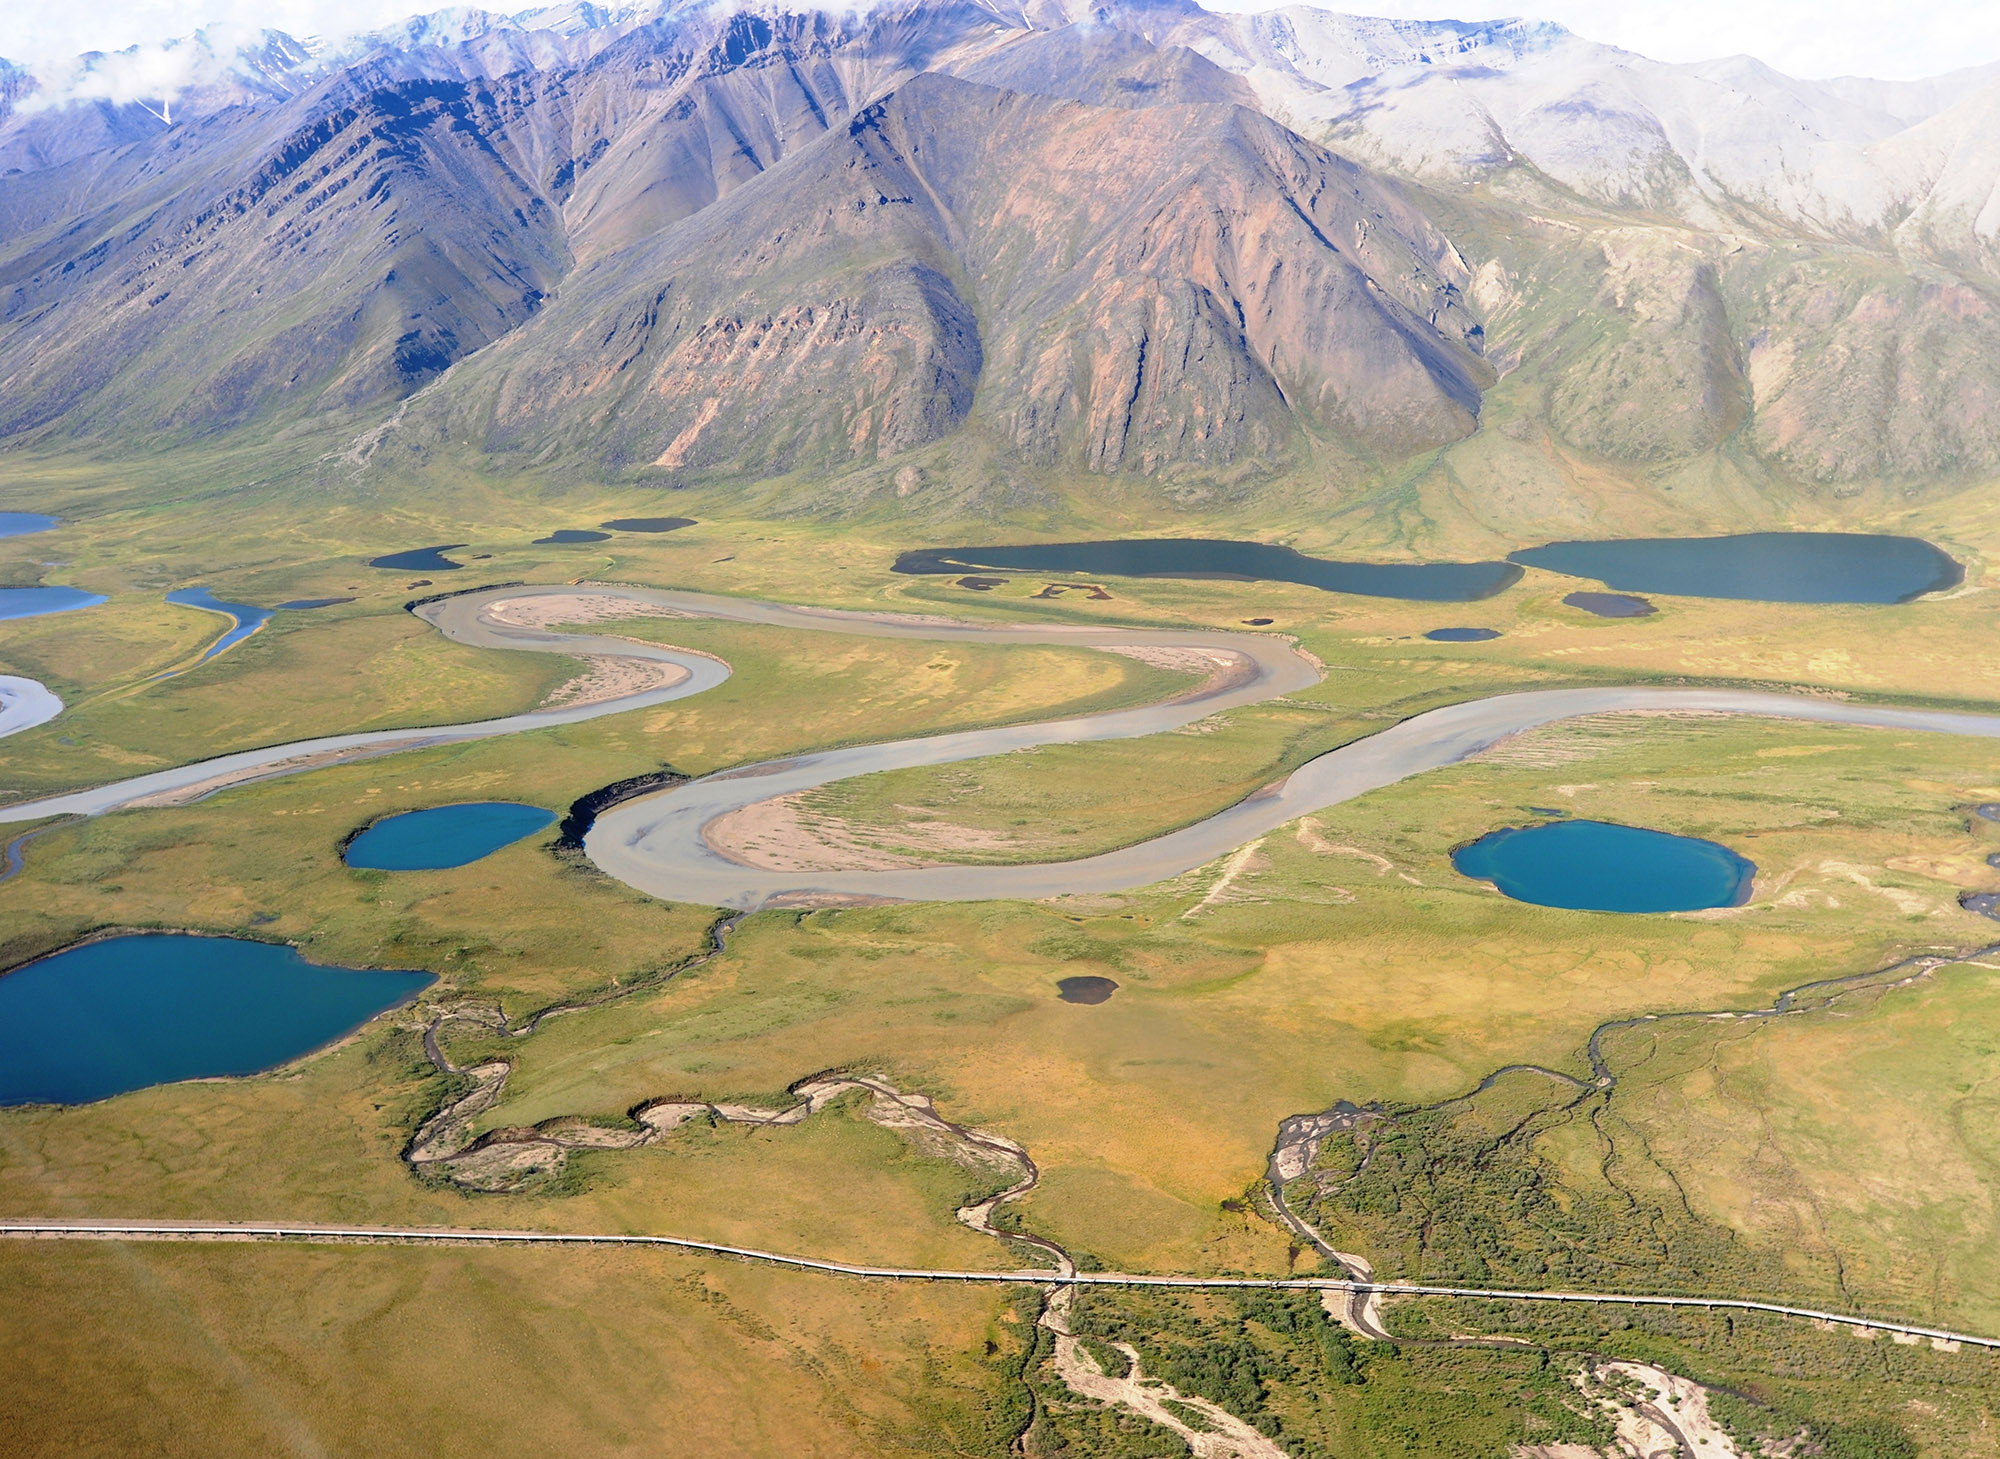 Arctic lakes and Atigun River on Alaska's North Slope. The Dalton Highway and the trans-Alaska pipeline can be seen near the bottom of the image. Image credit: George W. Kling